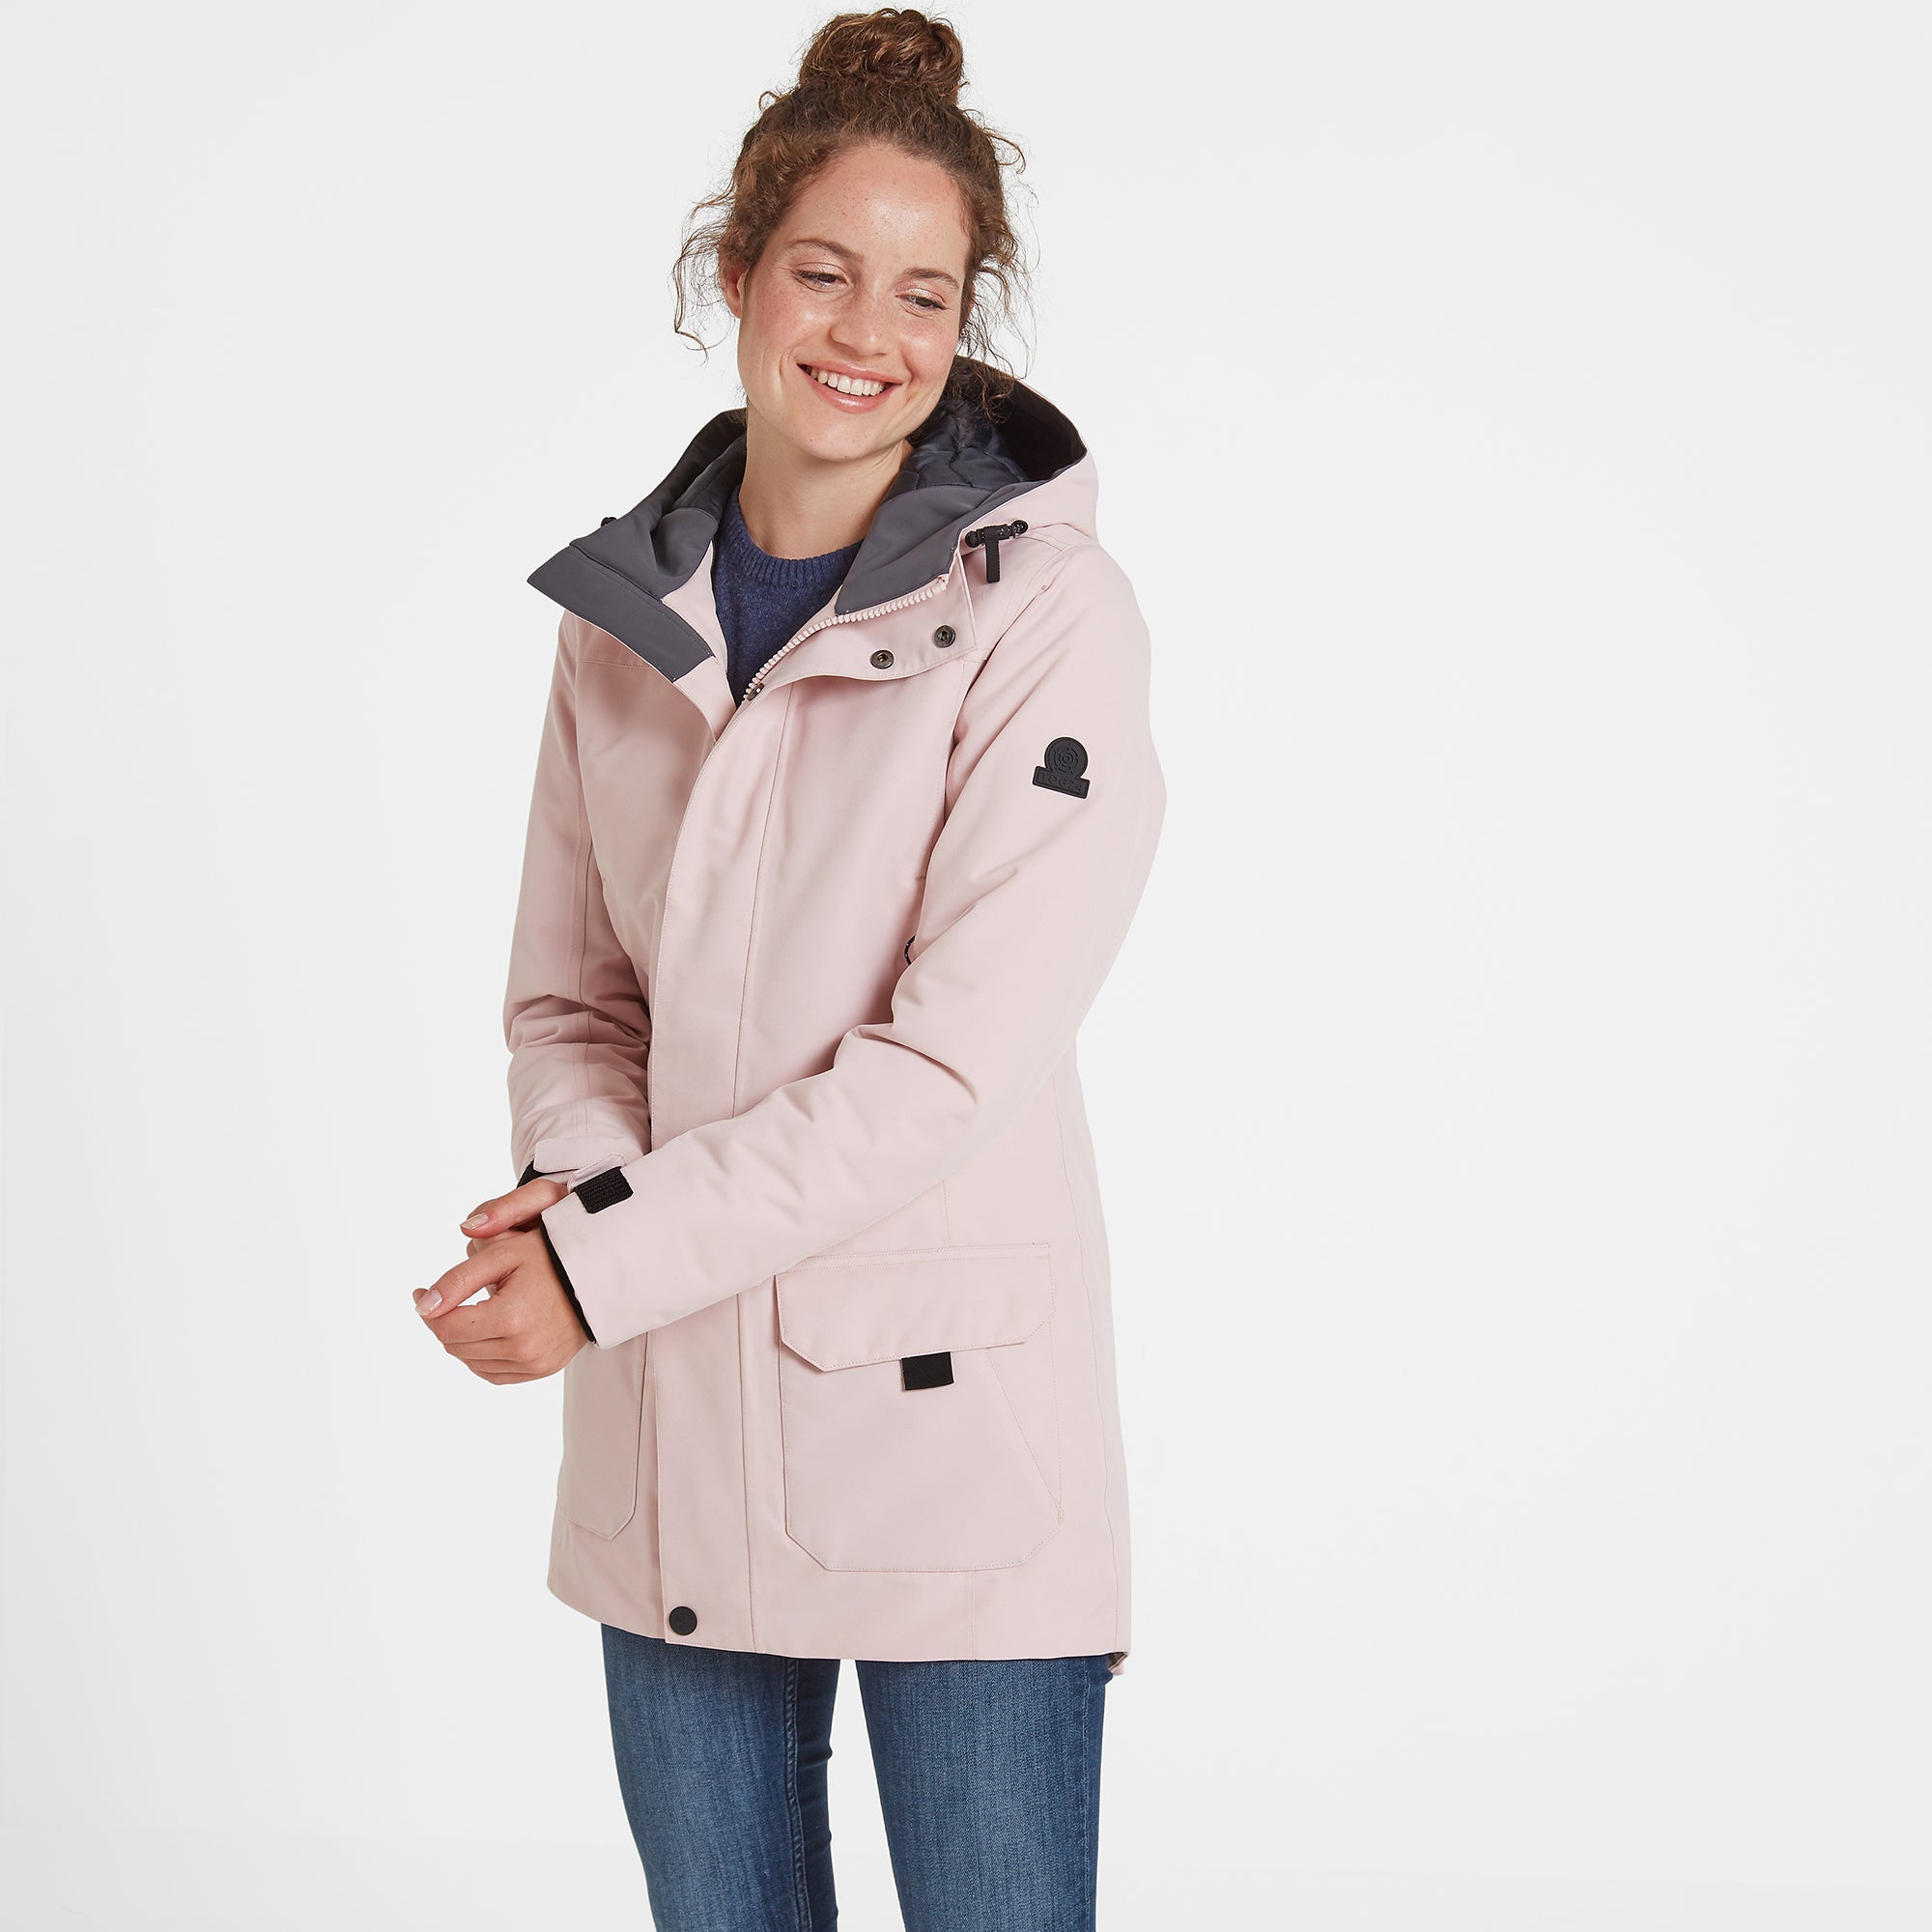 Dight Womens Waterproof Parka - Rose Pink